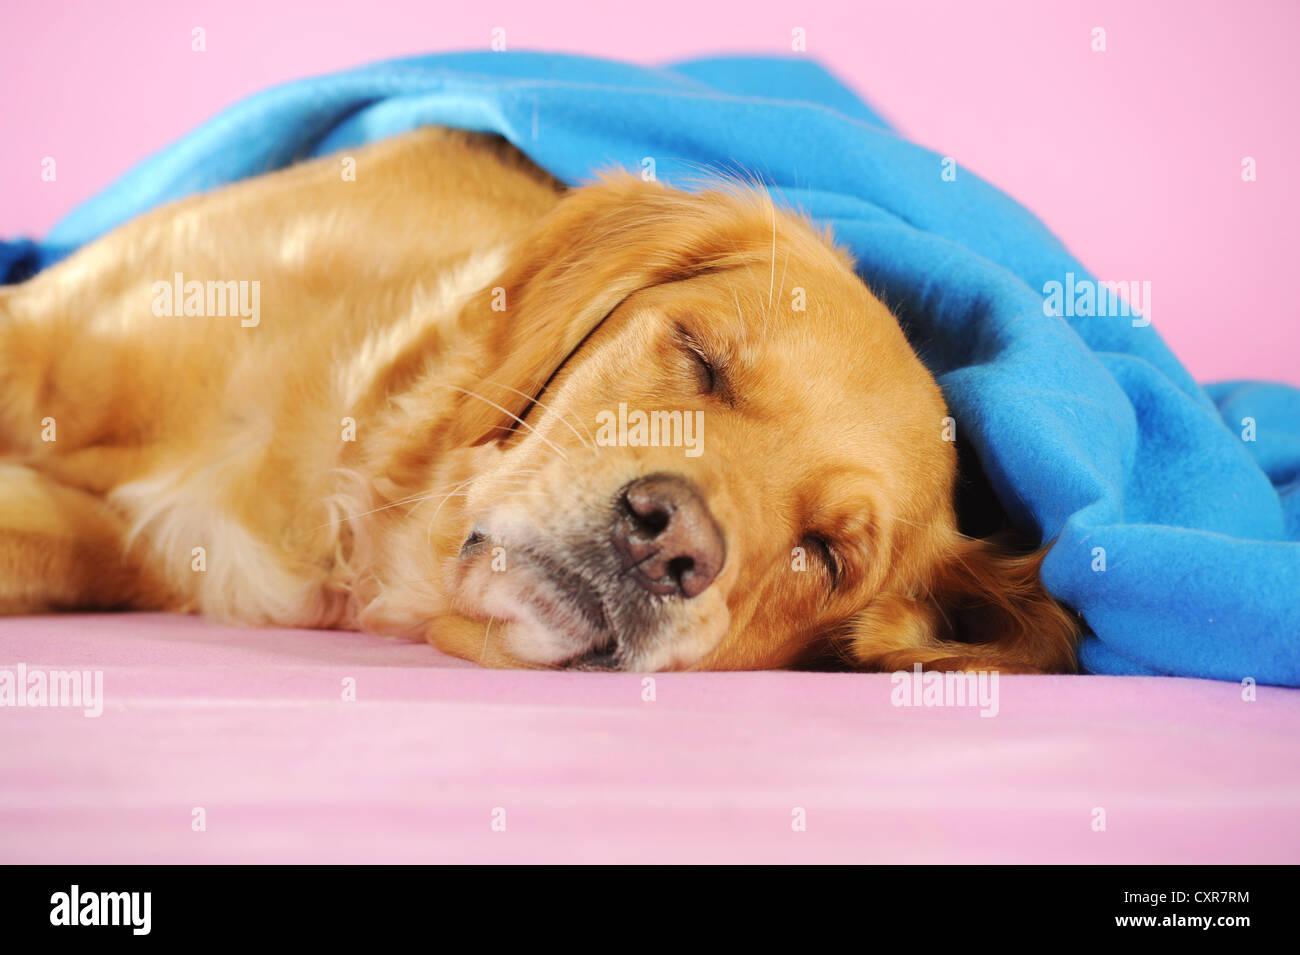 Golden Retriever sleeping underneath a blue blanket - Stock Image